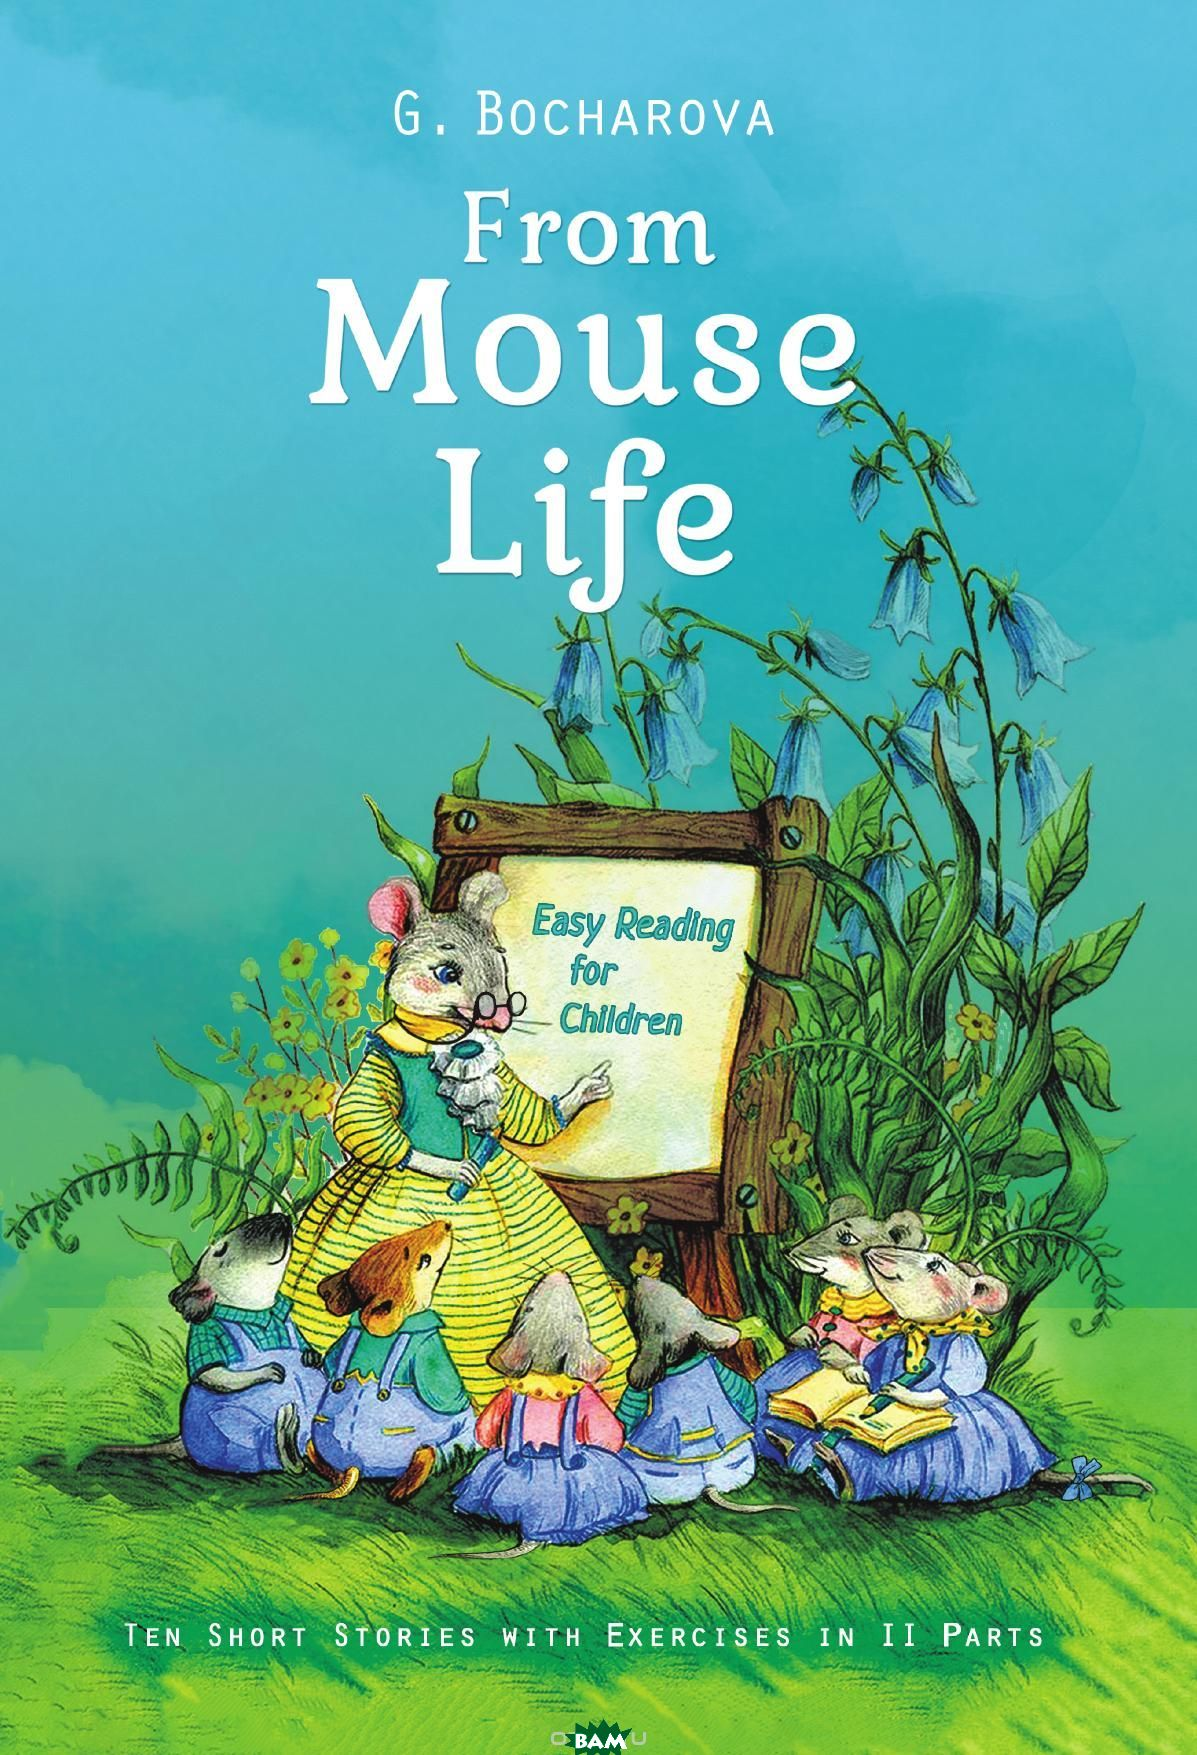 Купить From mouse life. Easy Reading for Children Ten Short Stories with Exercises in II Parts, G. Bocharova, 9785519503921